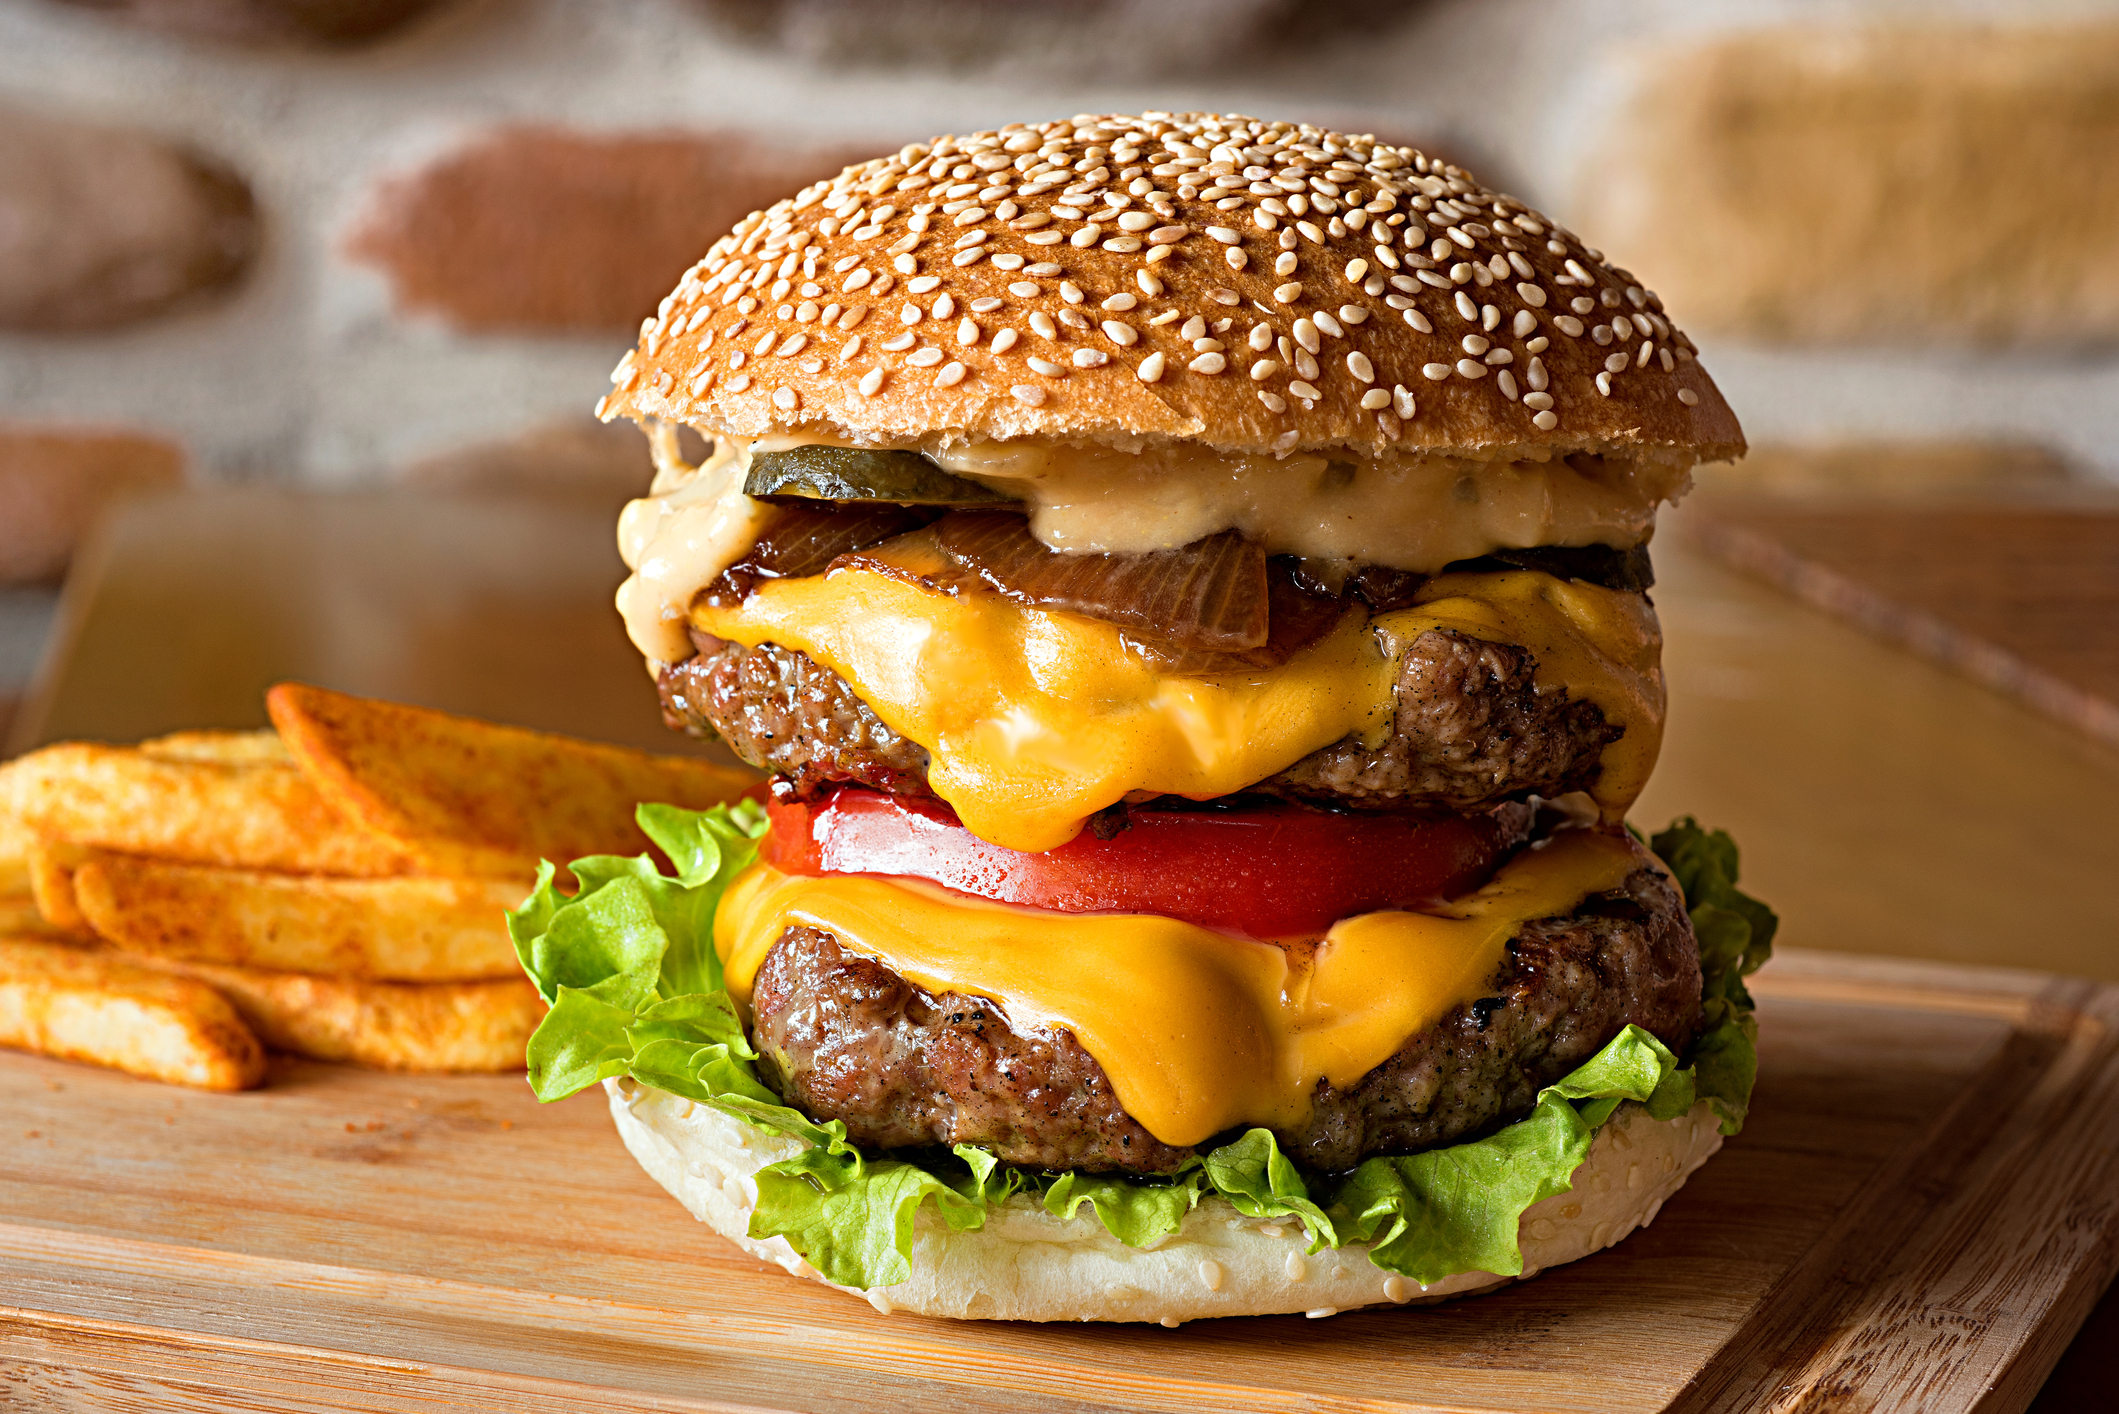 Double cheeseburger with french fries (Getty Images)